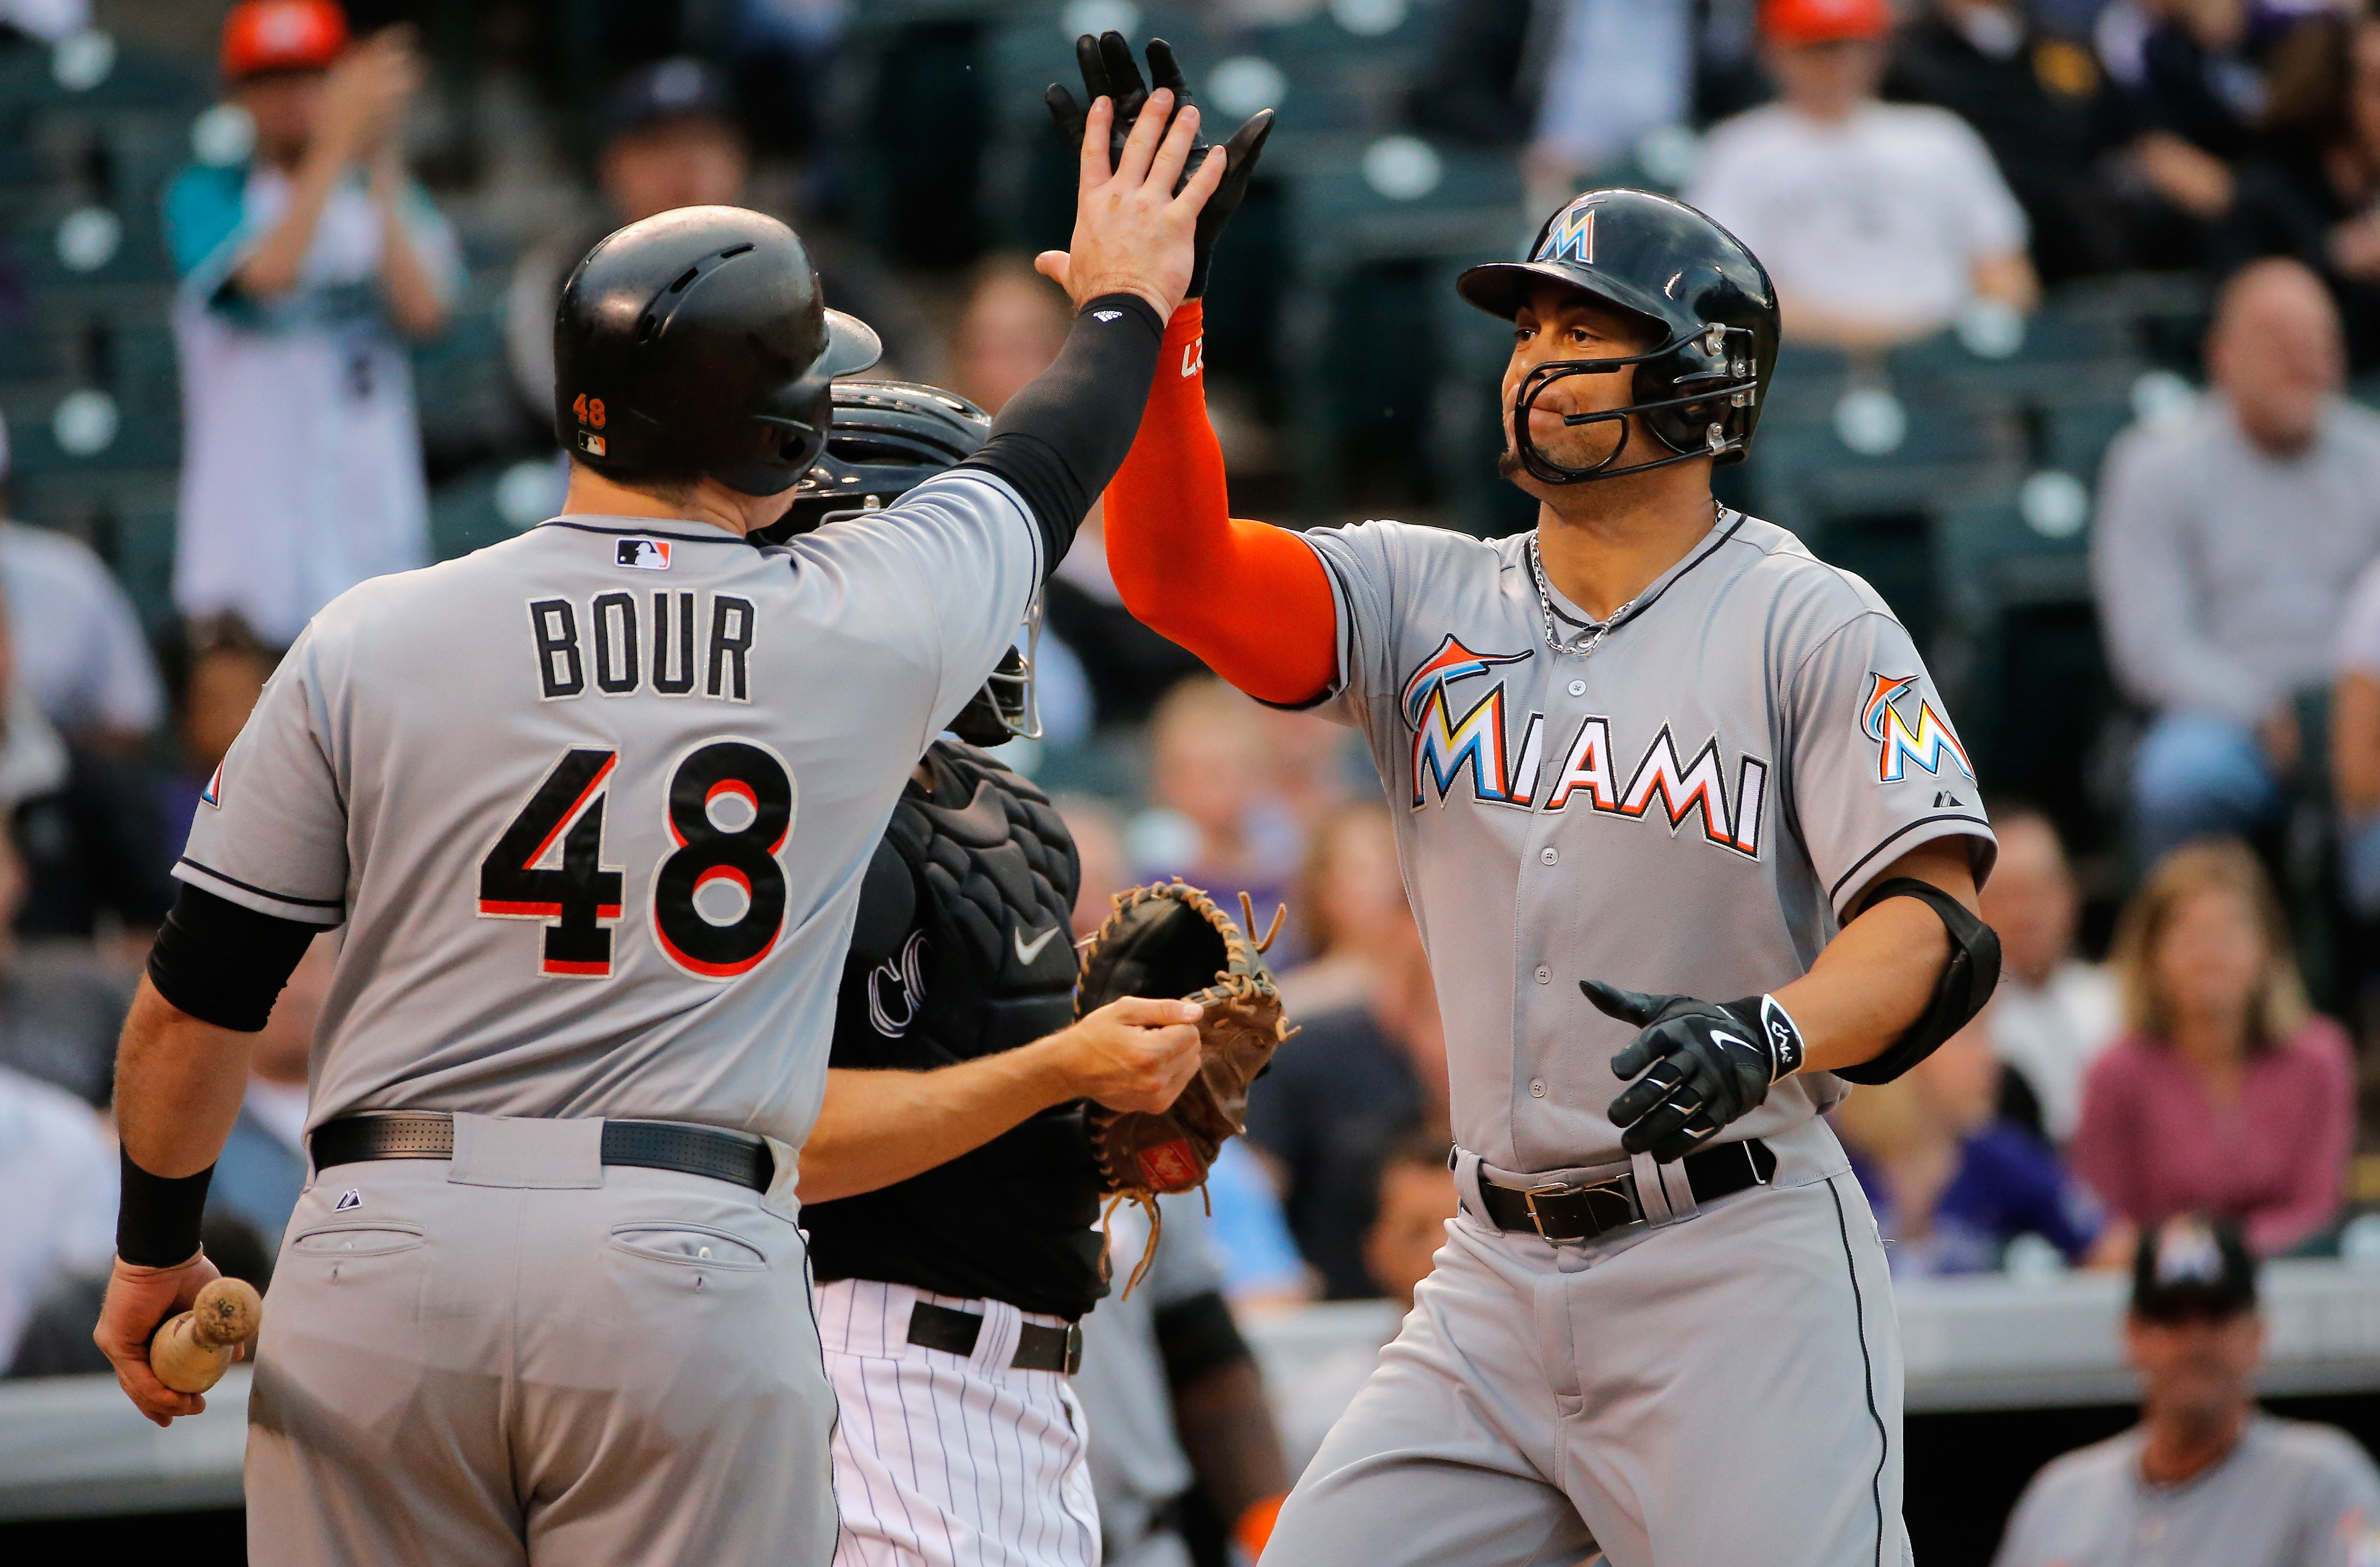 Giancarlo Stanton #27 of the Miami Marlins celebrates his solo home run off of Eddie Butler #31 of the Colorado Rockies with Justin Bour #48 of the Miami Marlins as the Marlins take a 3-0 lead in the third inning at Coors Field on June 5, 2015 in Denver, Colorado. (Photo by Doug Pensinger/Getty Images)